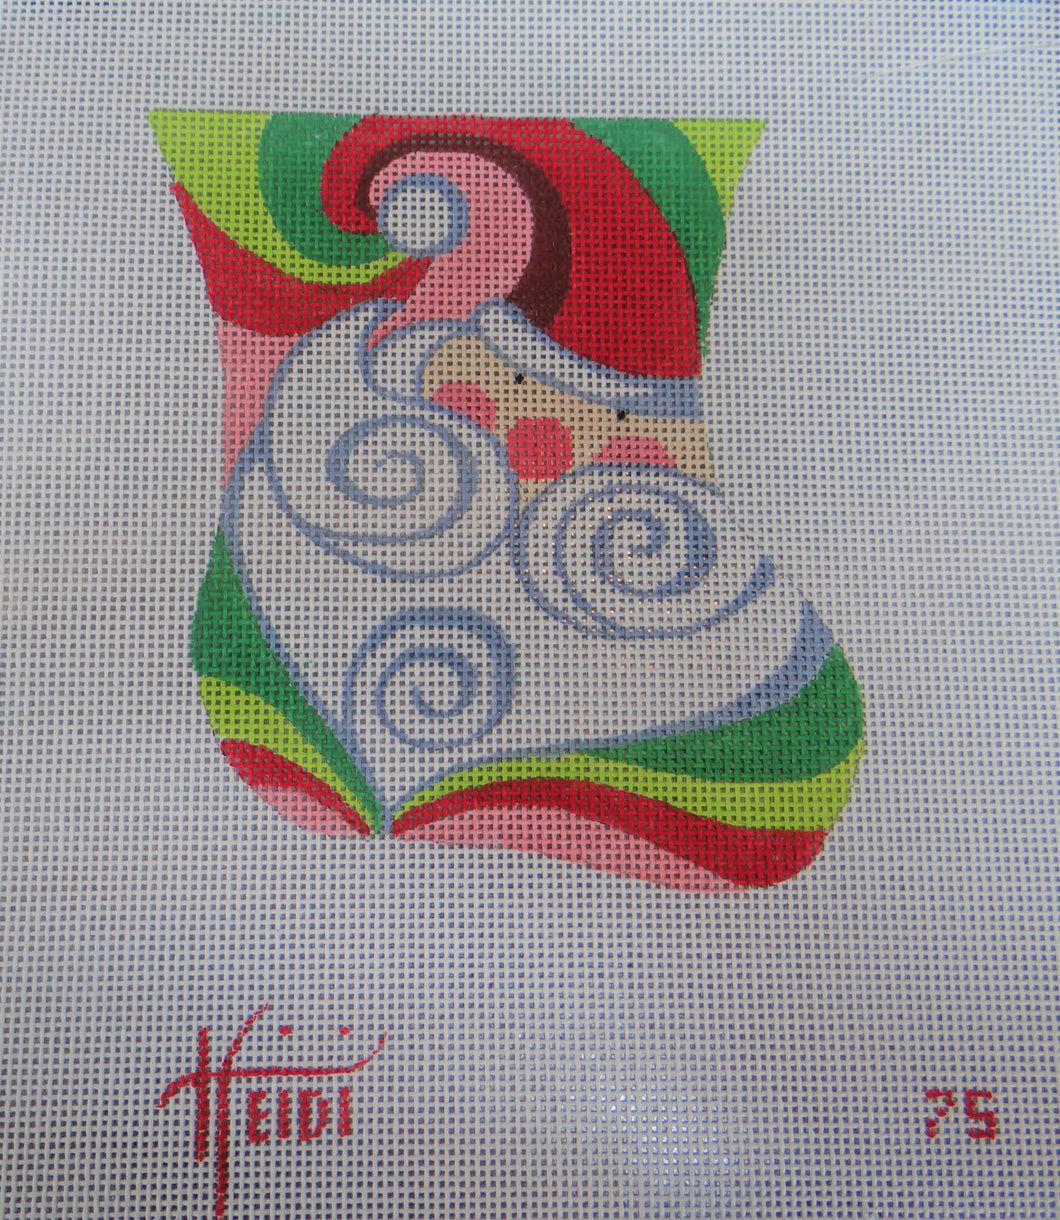 75 - Santa Swirl Stocking